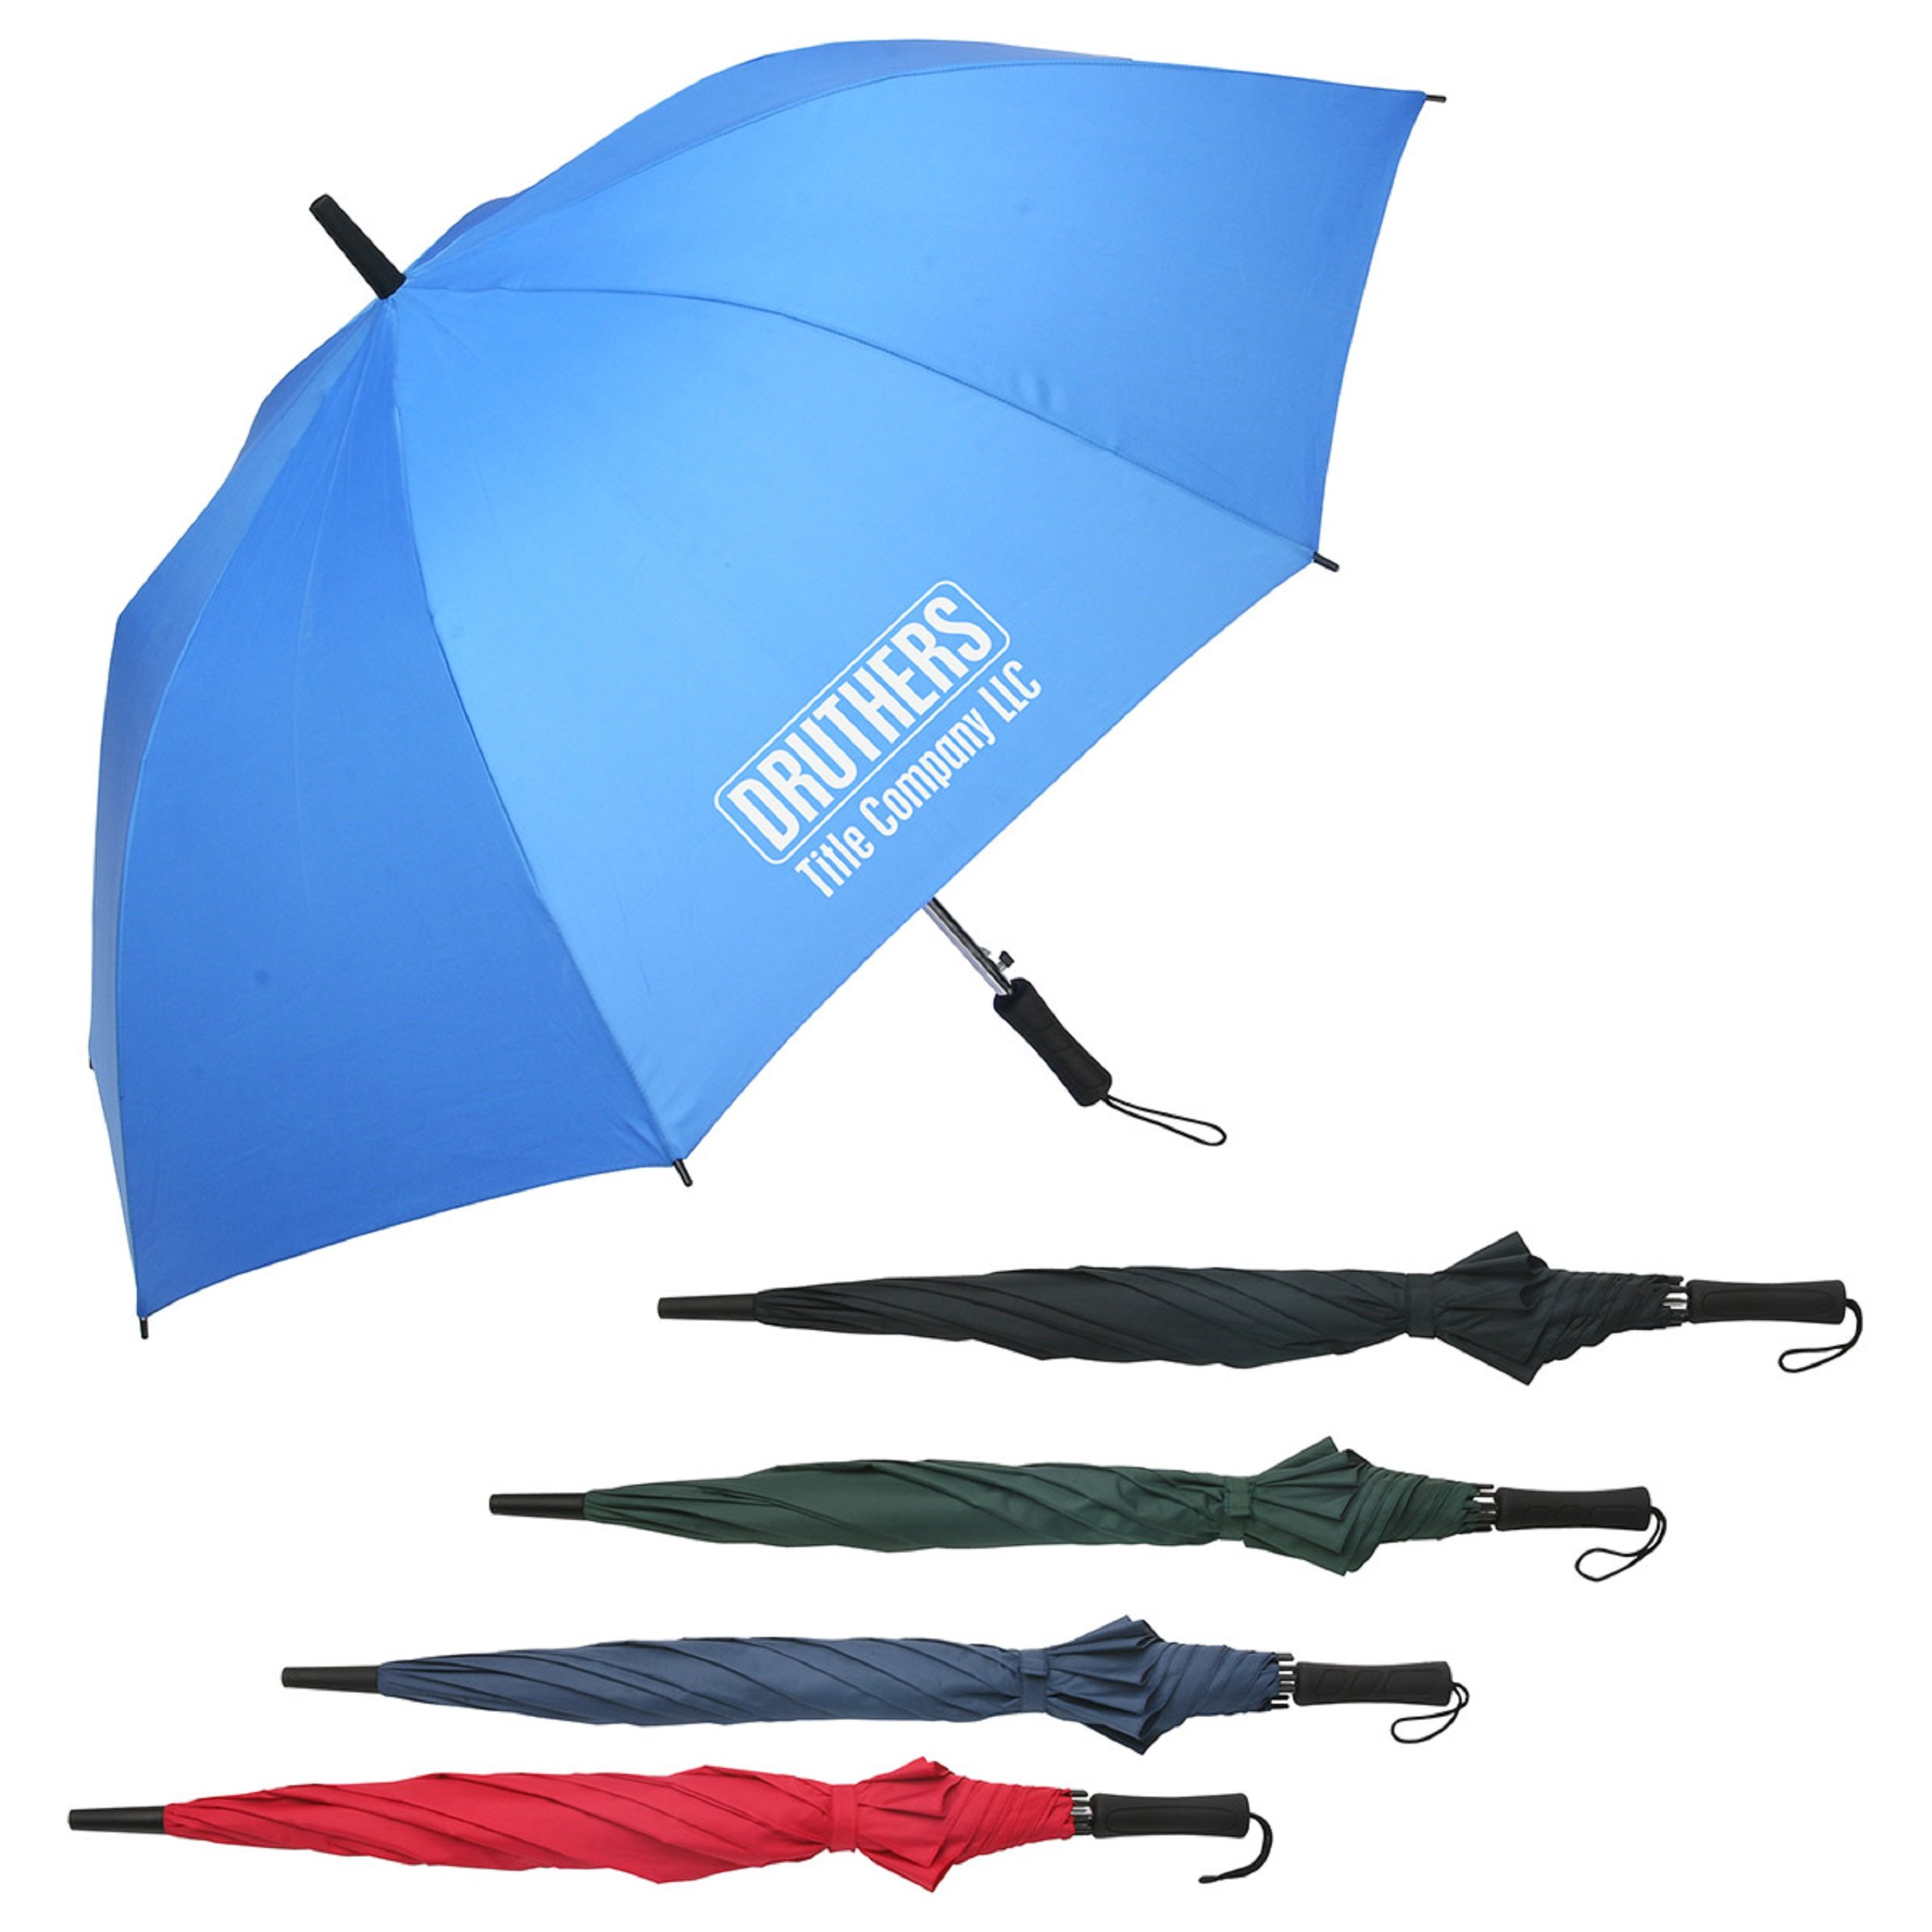 30 Personalized Lockwood Auto Open Golf Umbrella Printed With Your Logo Or Message